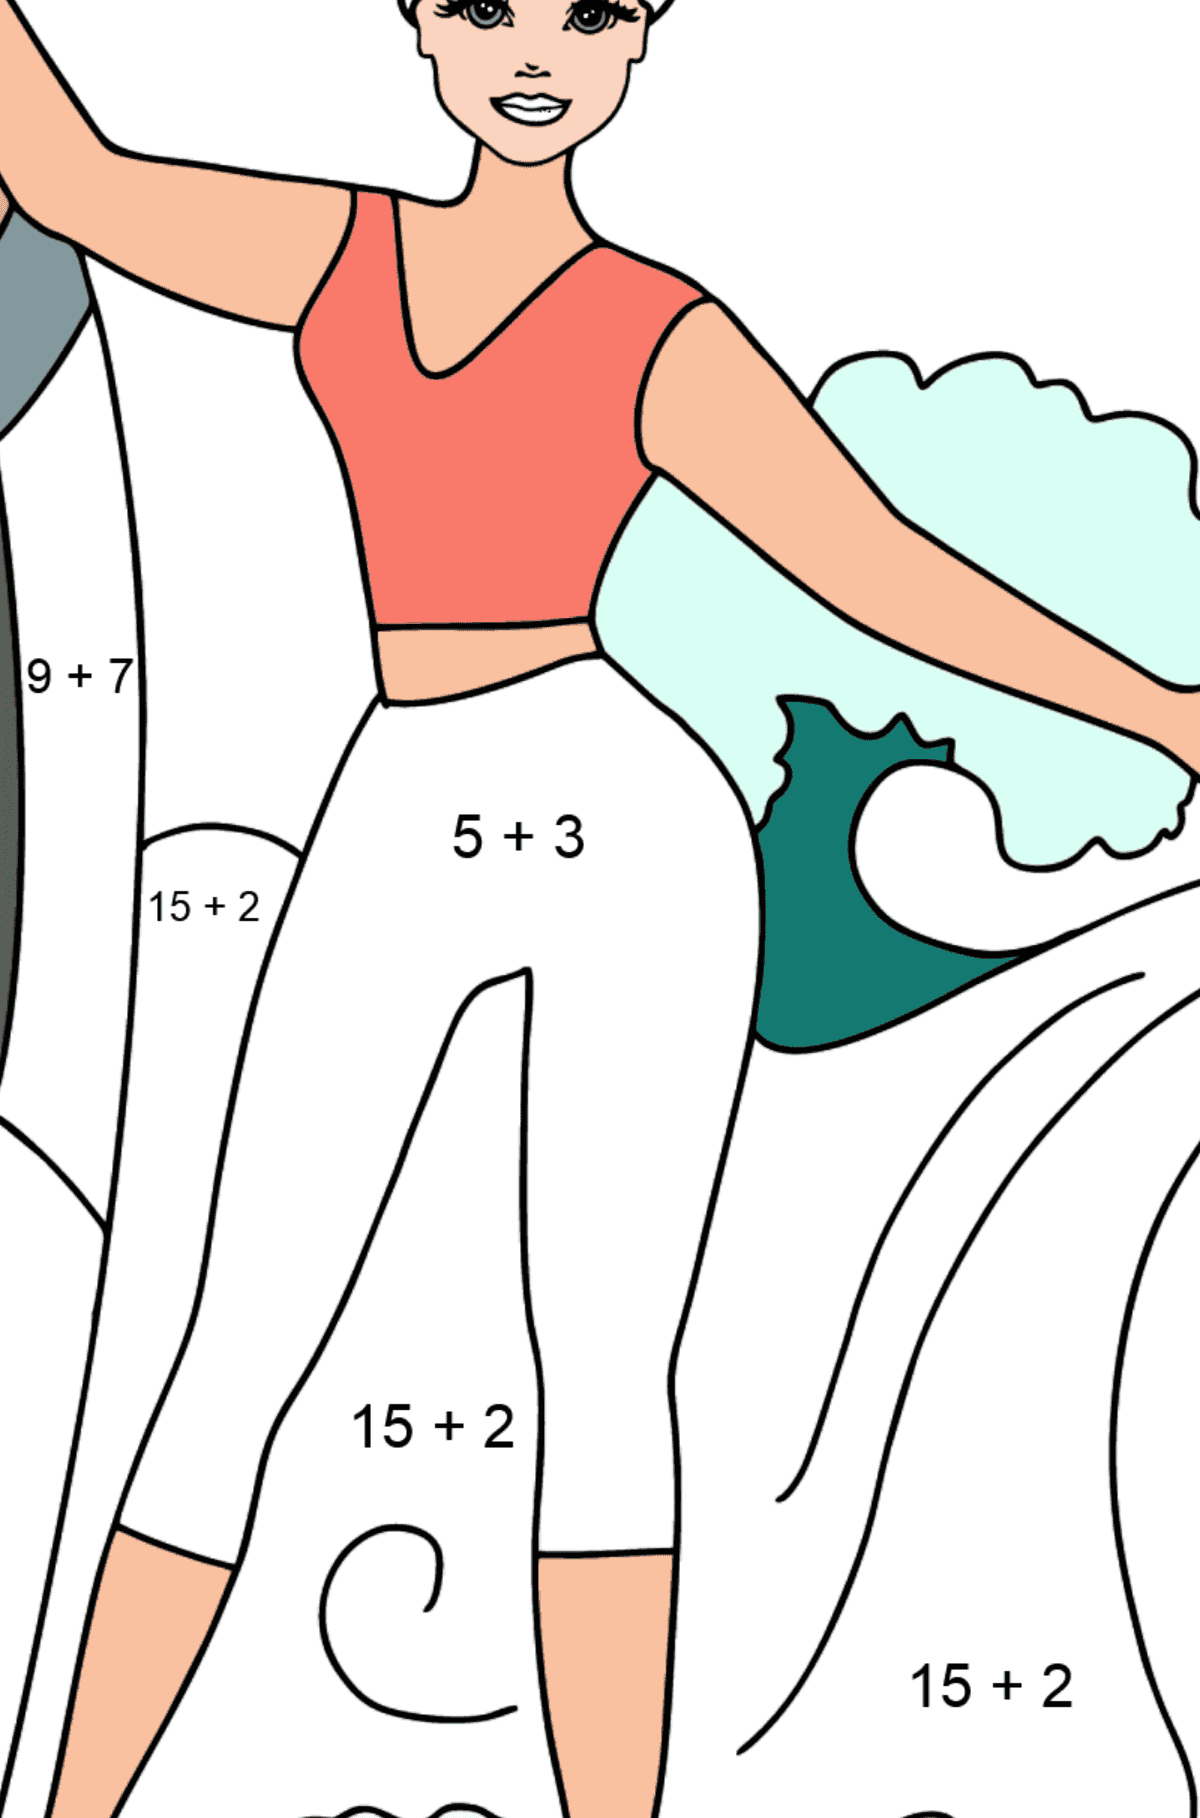 Barbie Surfer Doll coloring page - Math Coloring - Addition for Kids